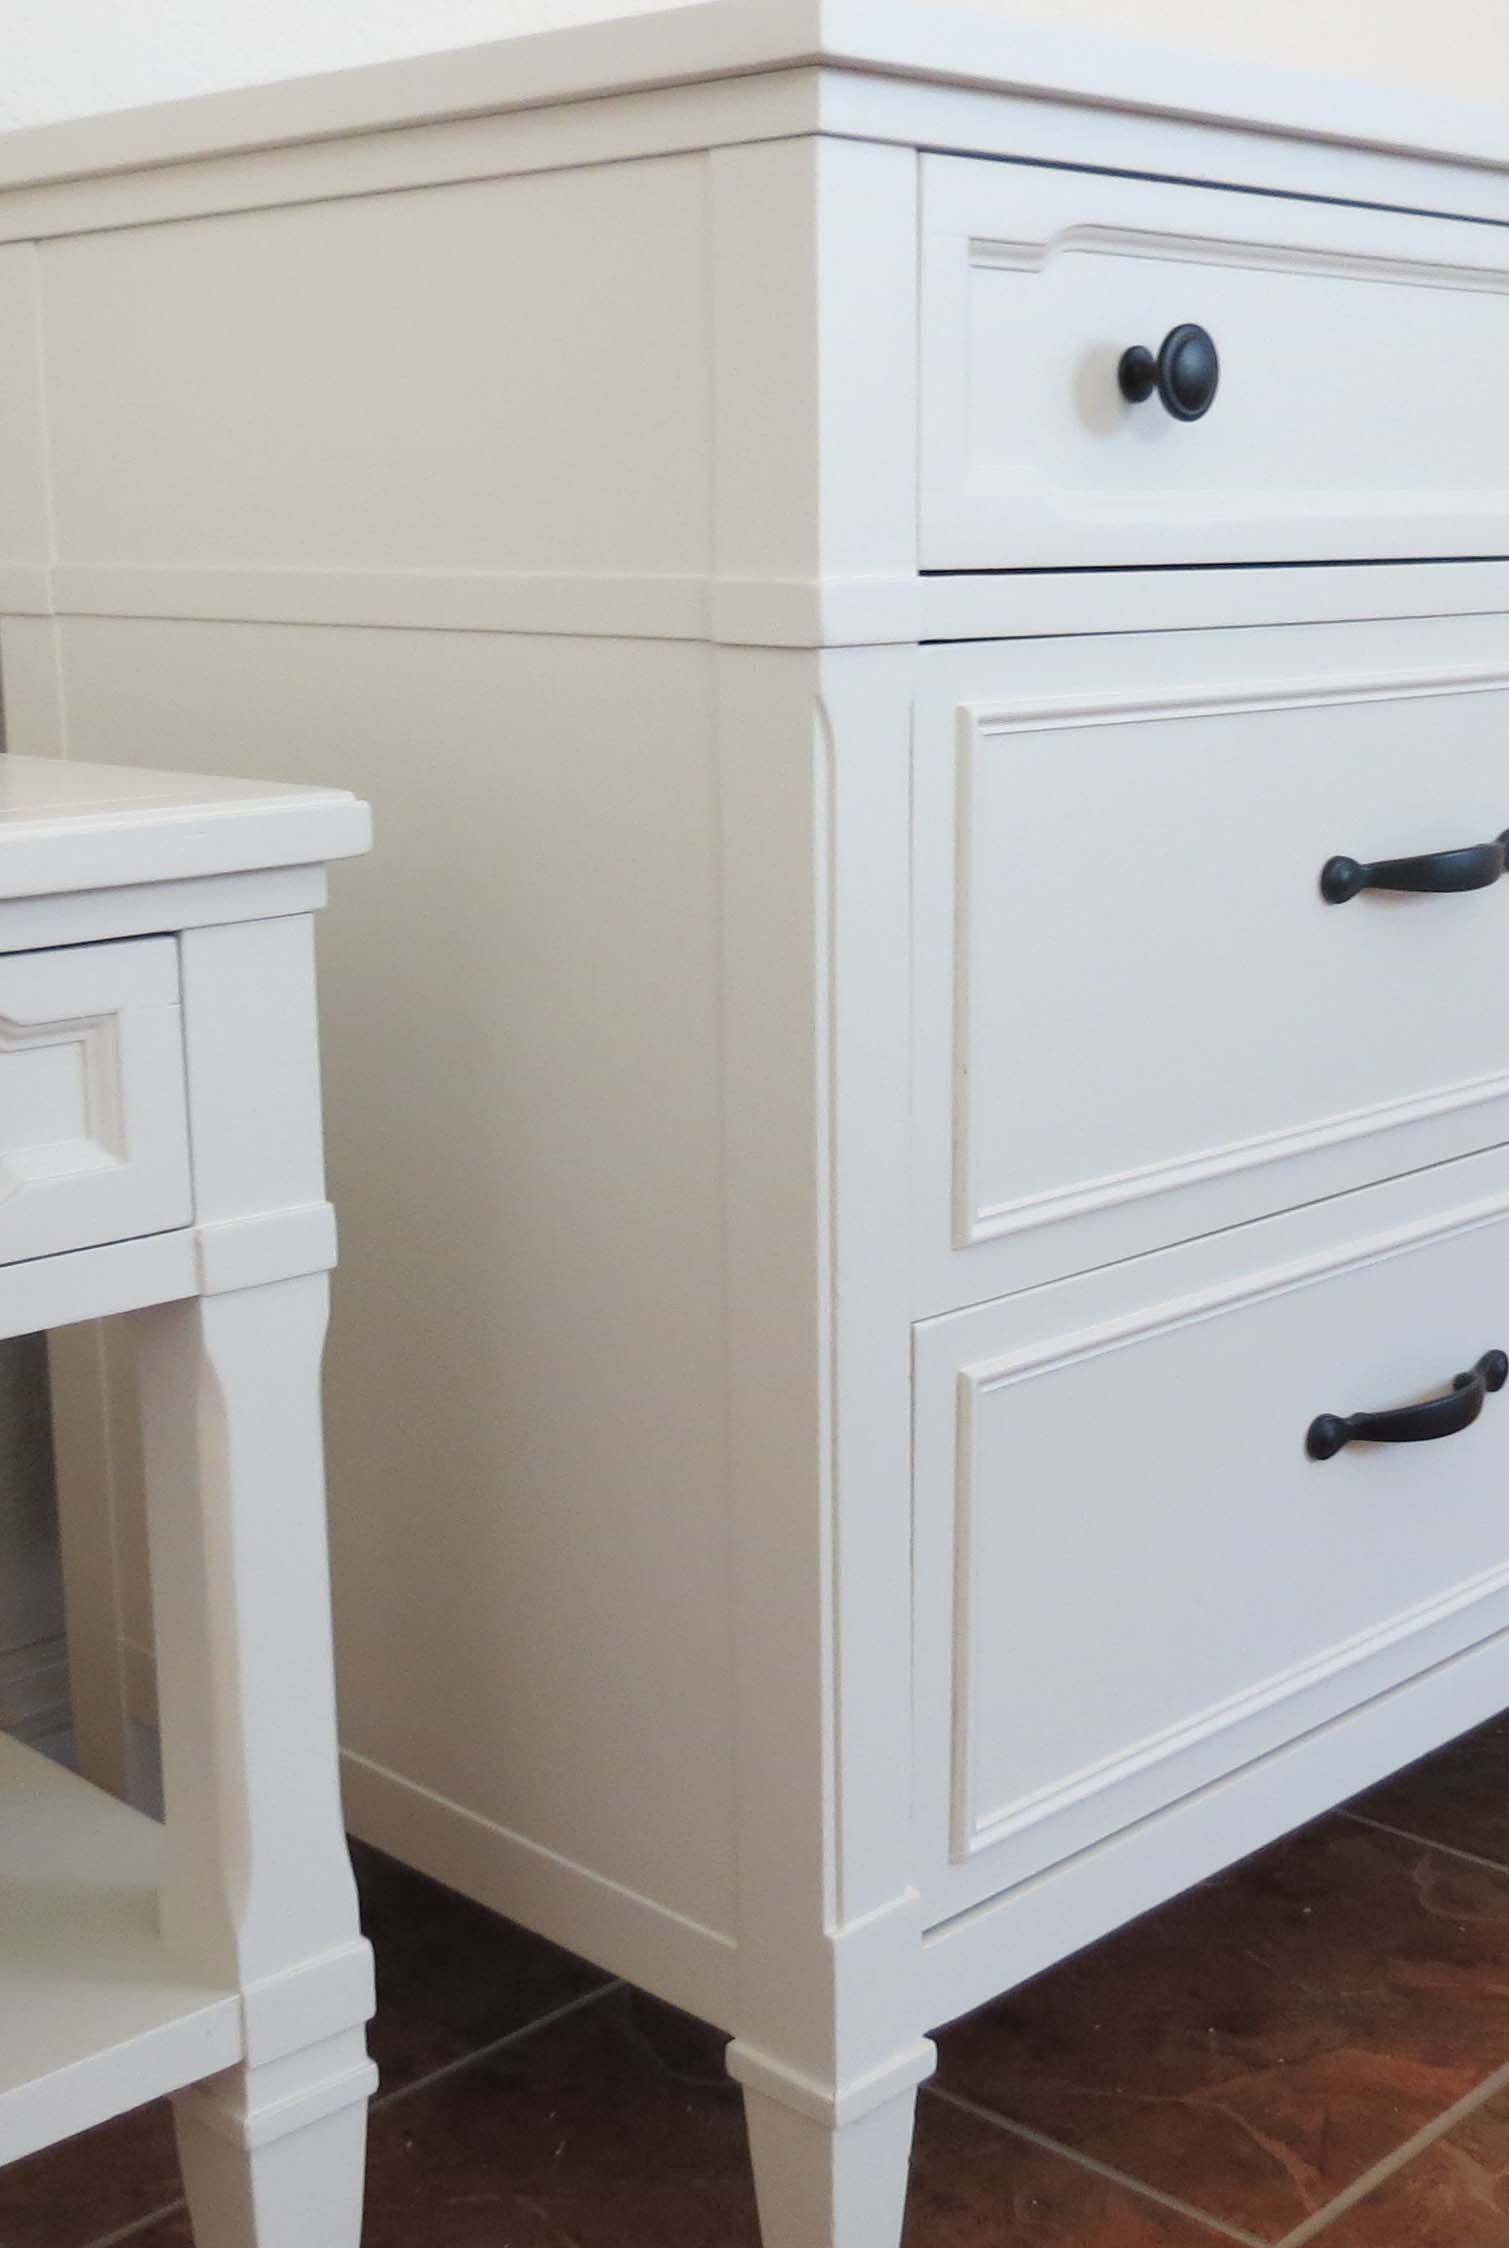 Drexel Dresser Set Refinished in White - Painted Furniture Ideas #furnitureredos